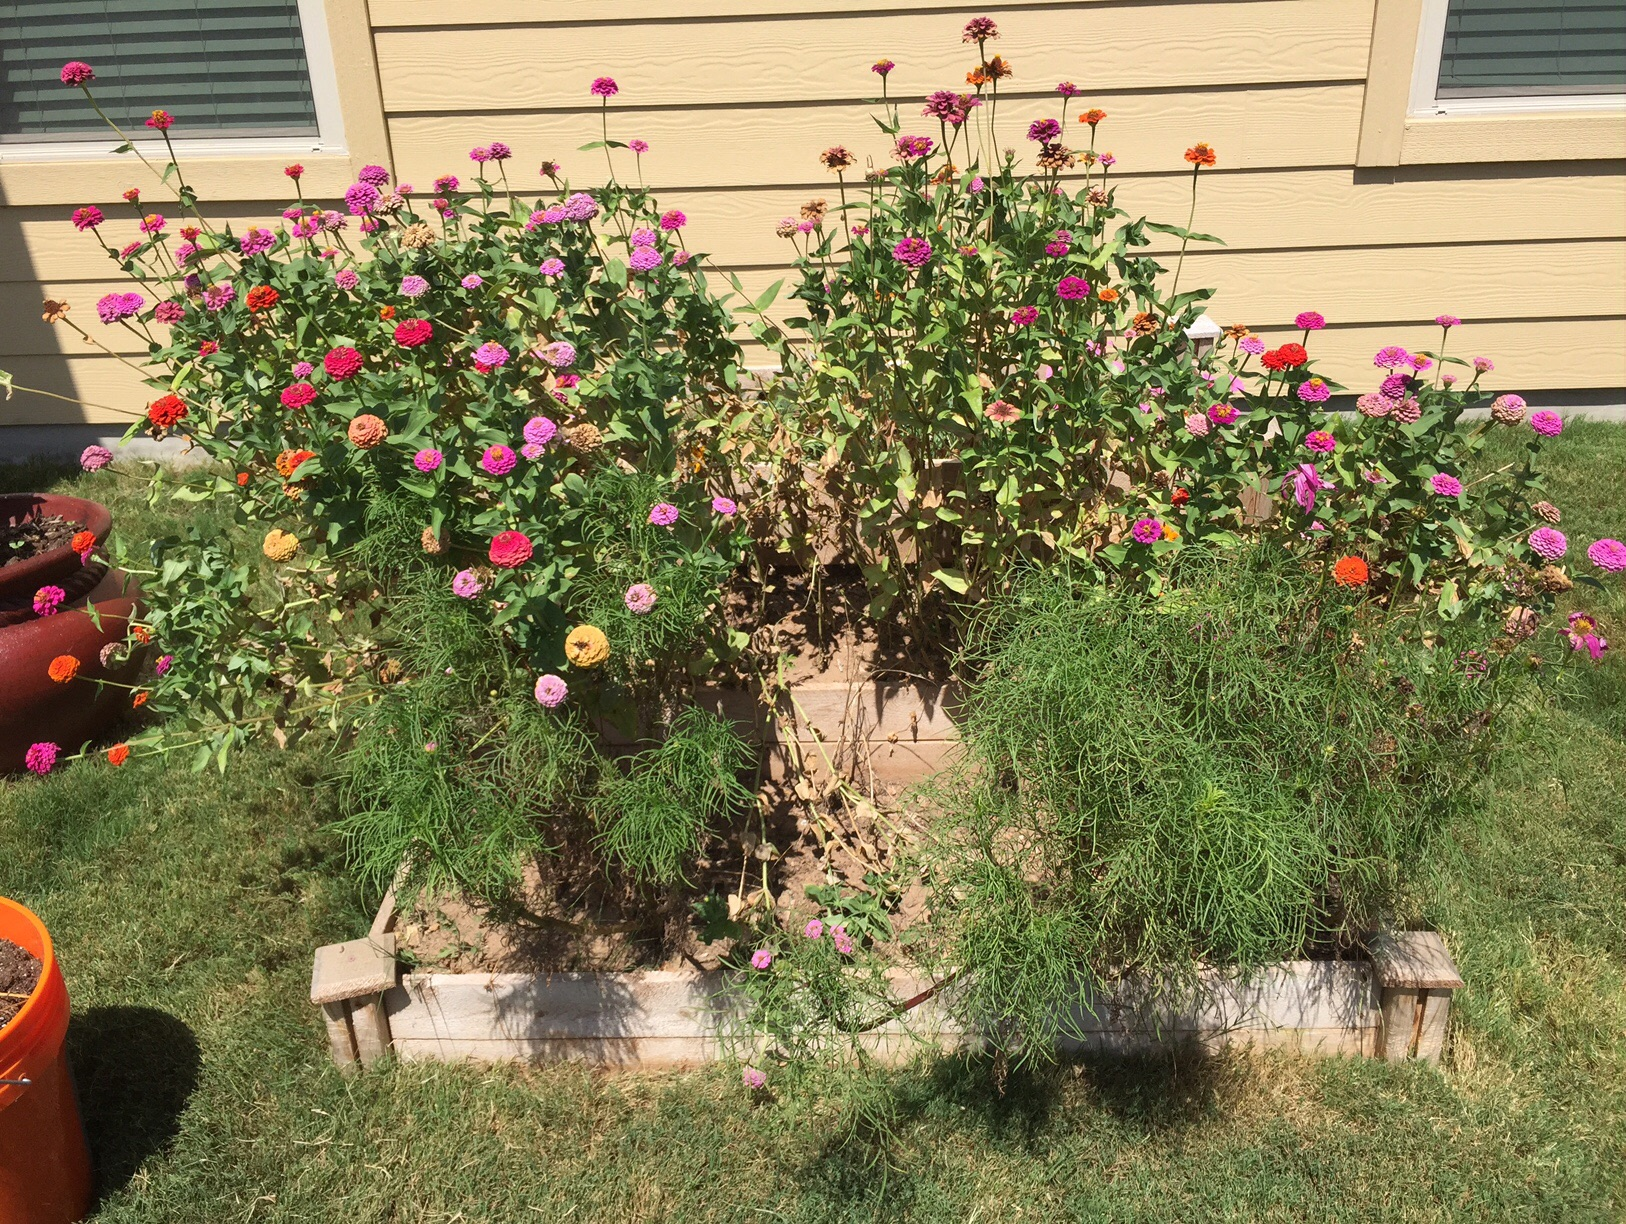 2015_Day 204: Cleaning out the zinnias